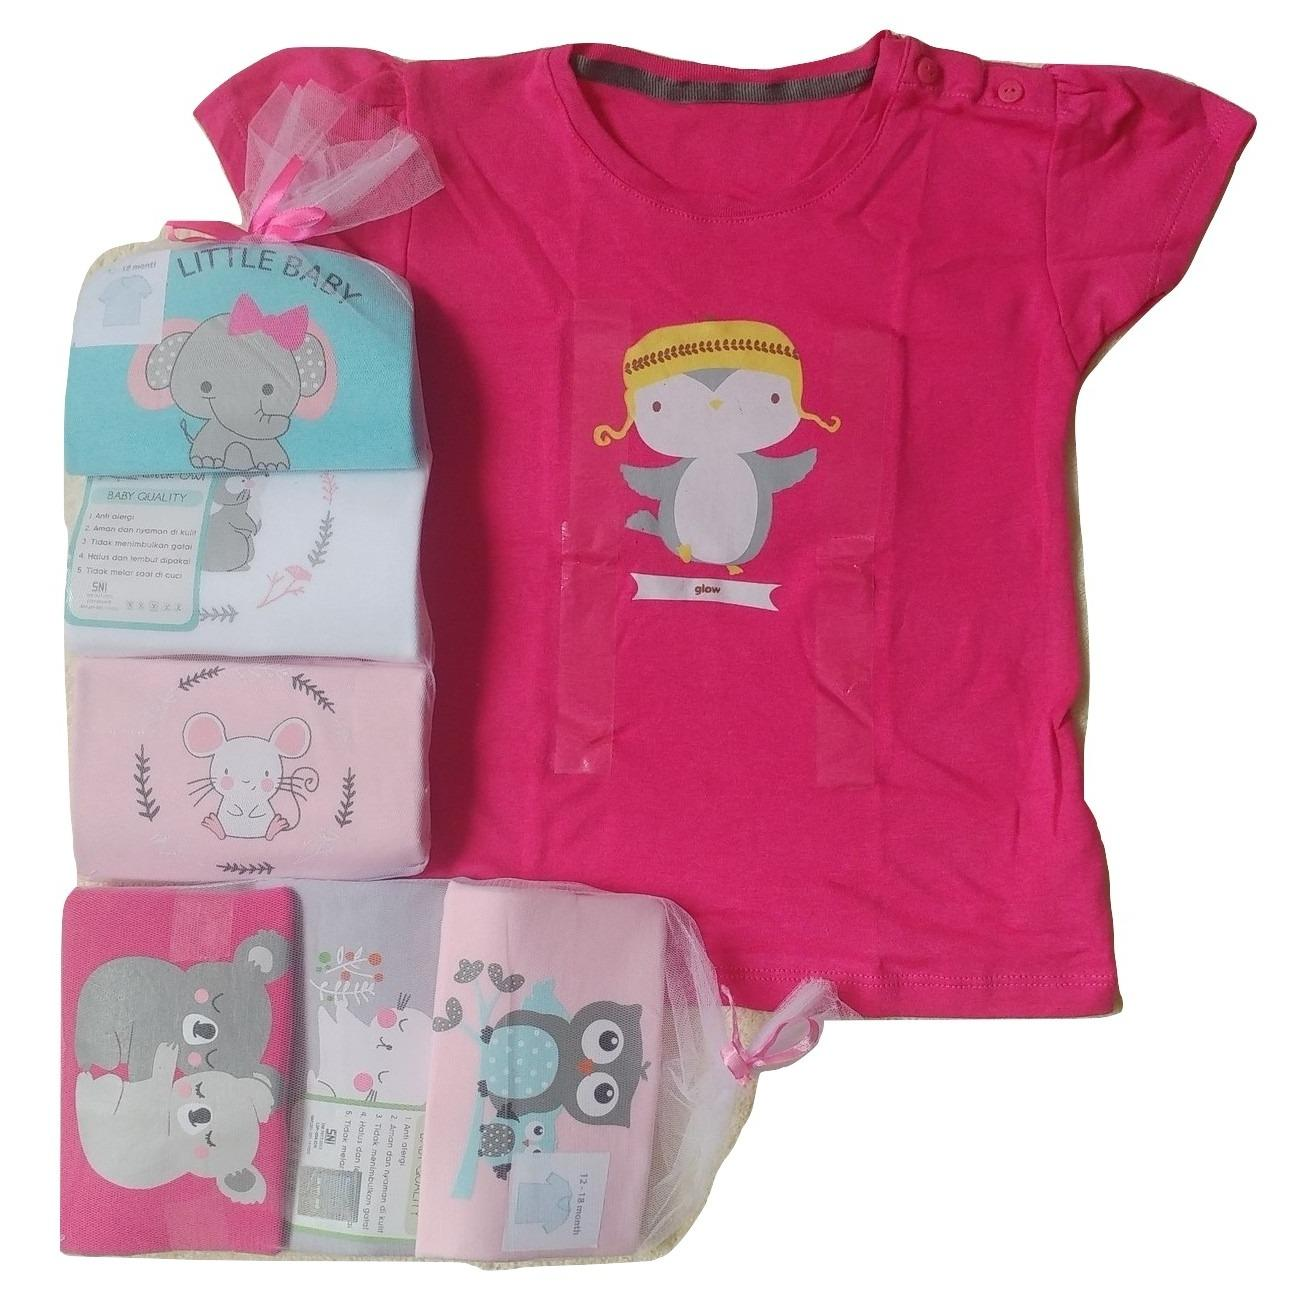 Miliki Segera Jelova Angela 3Pc Kaos Oblong Fashion Girls Baby Bayi 1 2 Years Mixmotif Random